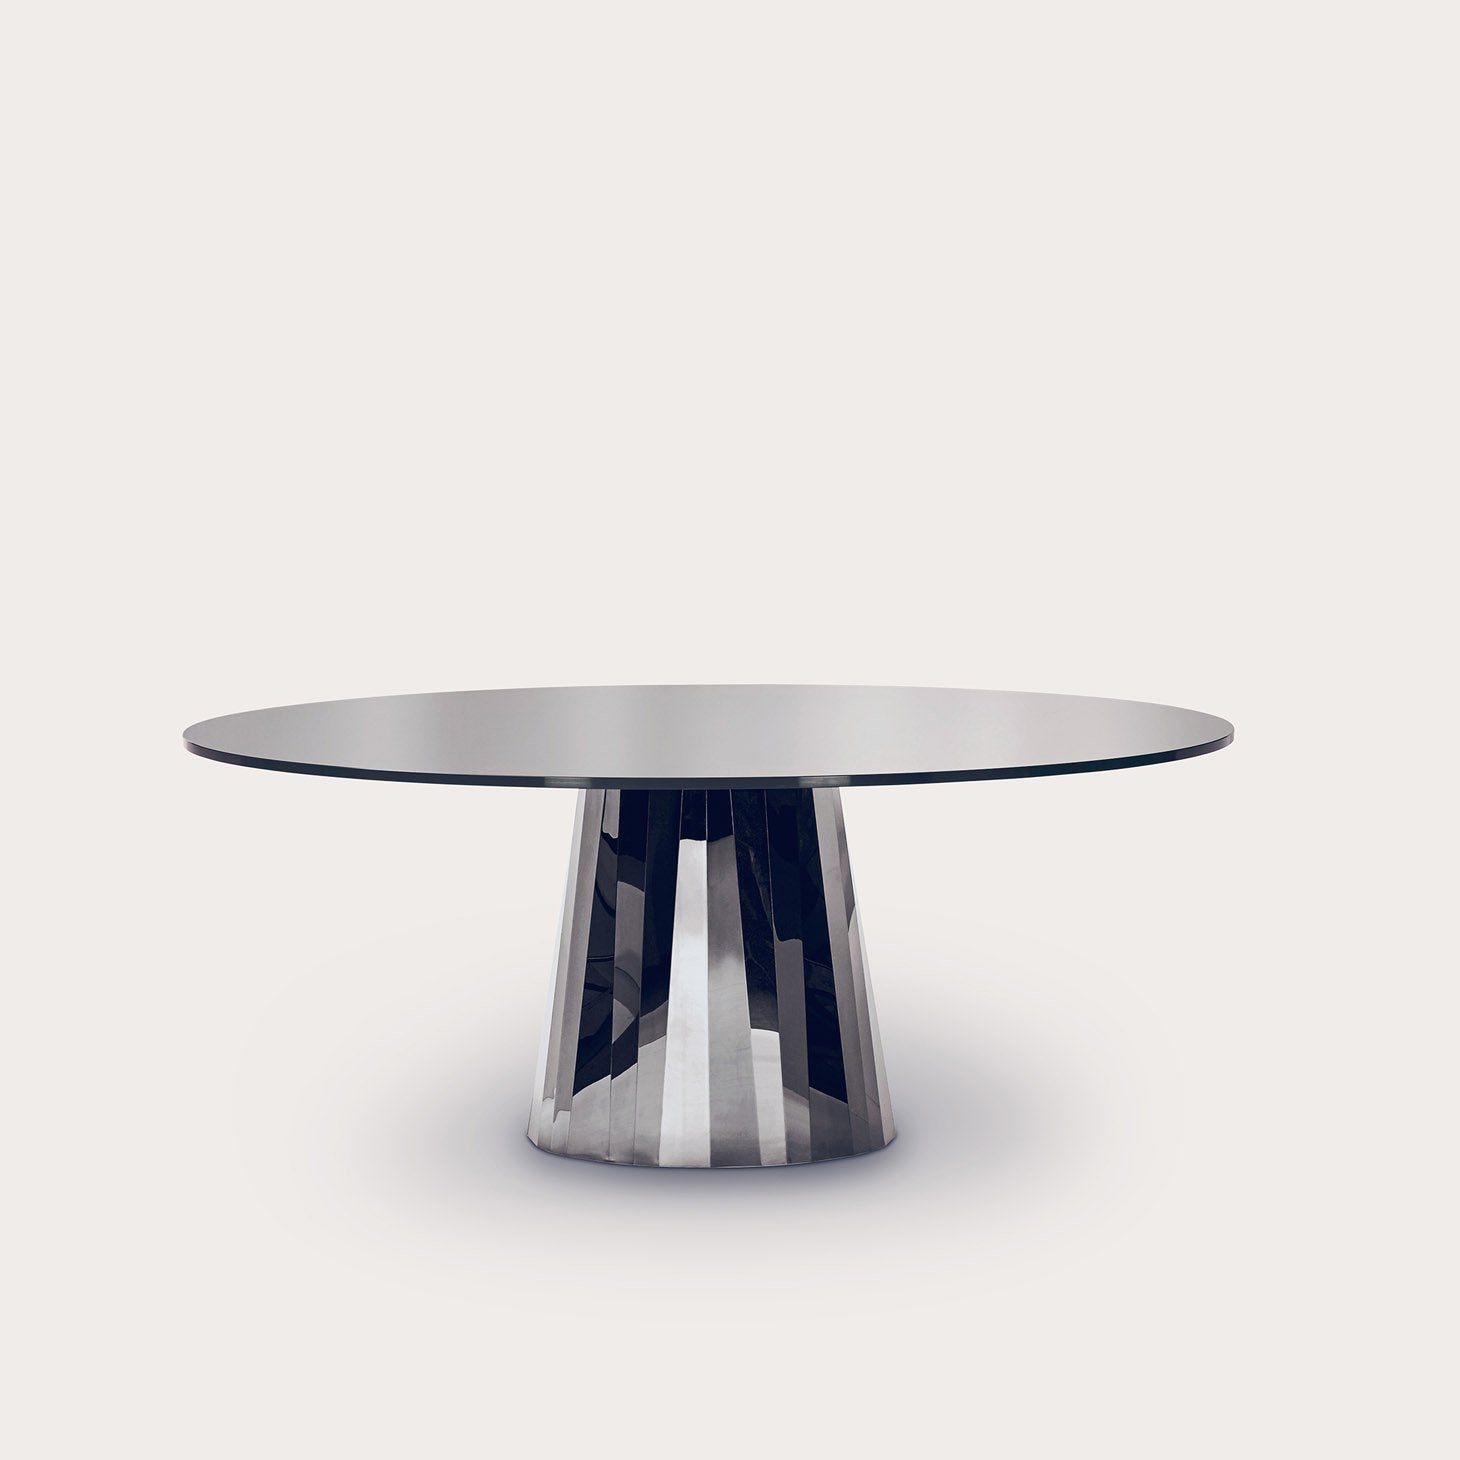 Pli Tables Victoria Wilmotte Designer Furniture Sku: 001-230-10262